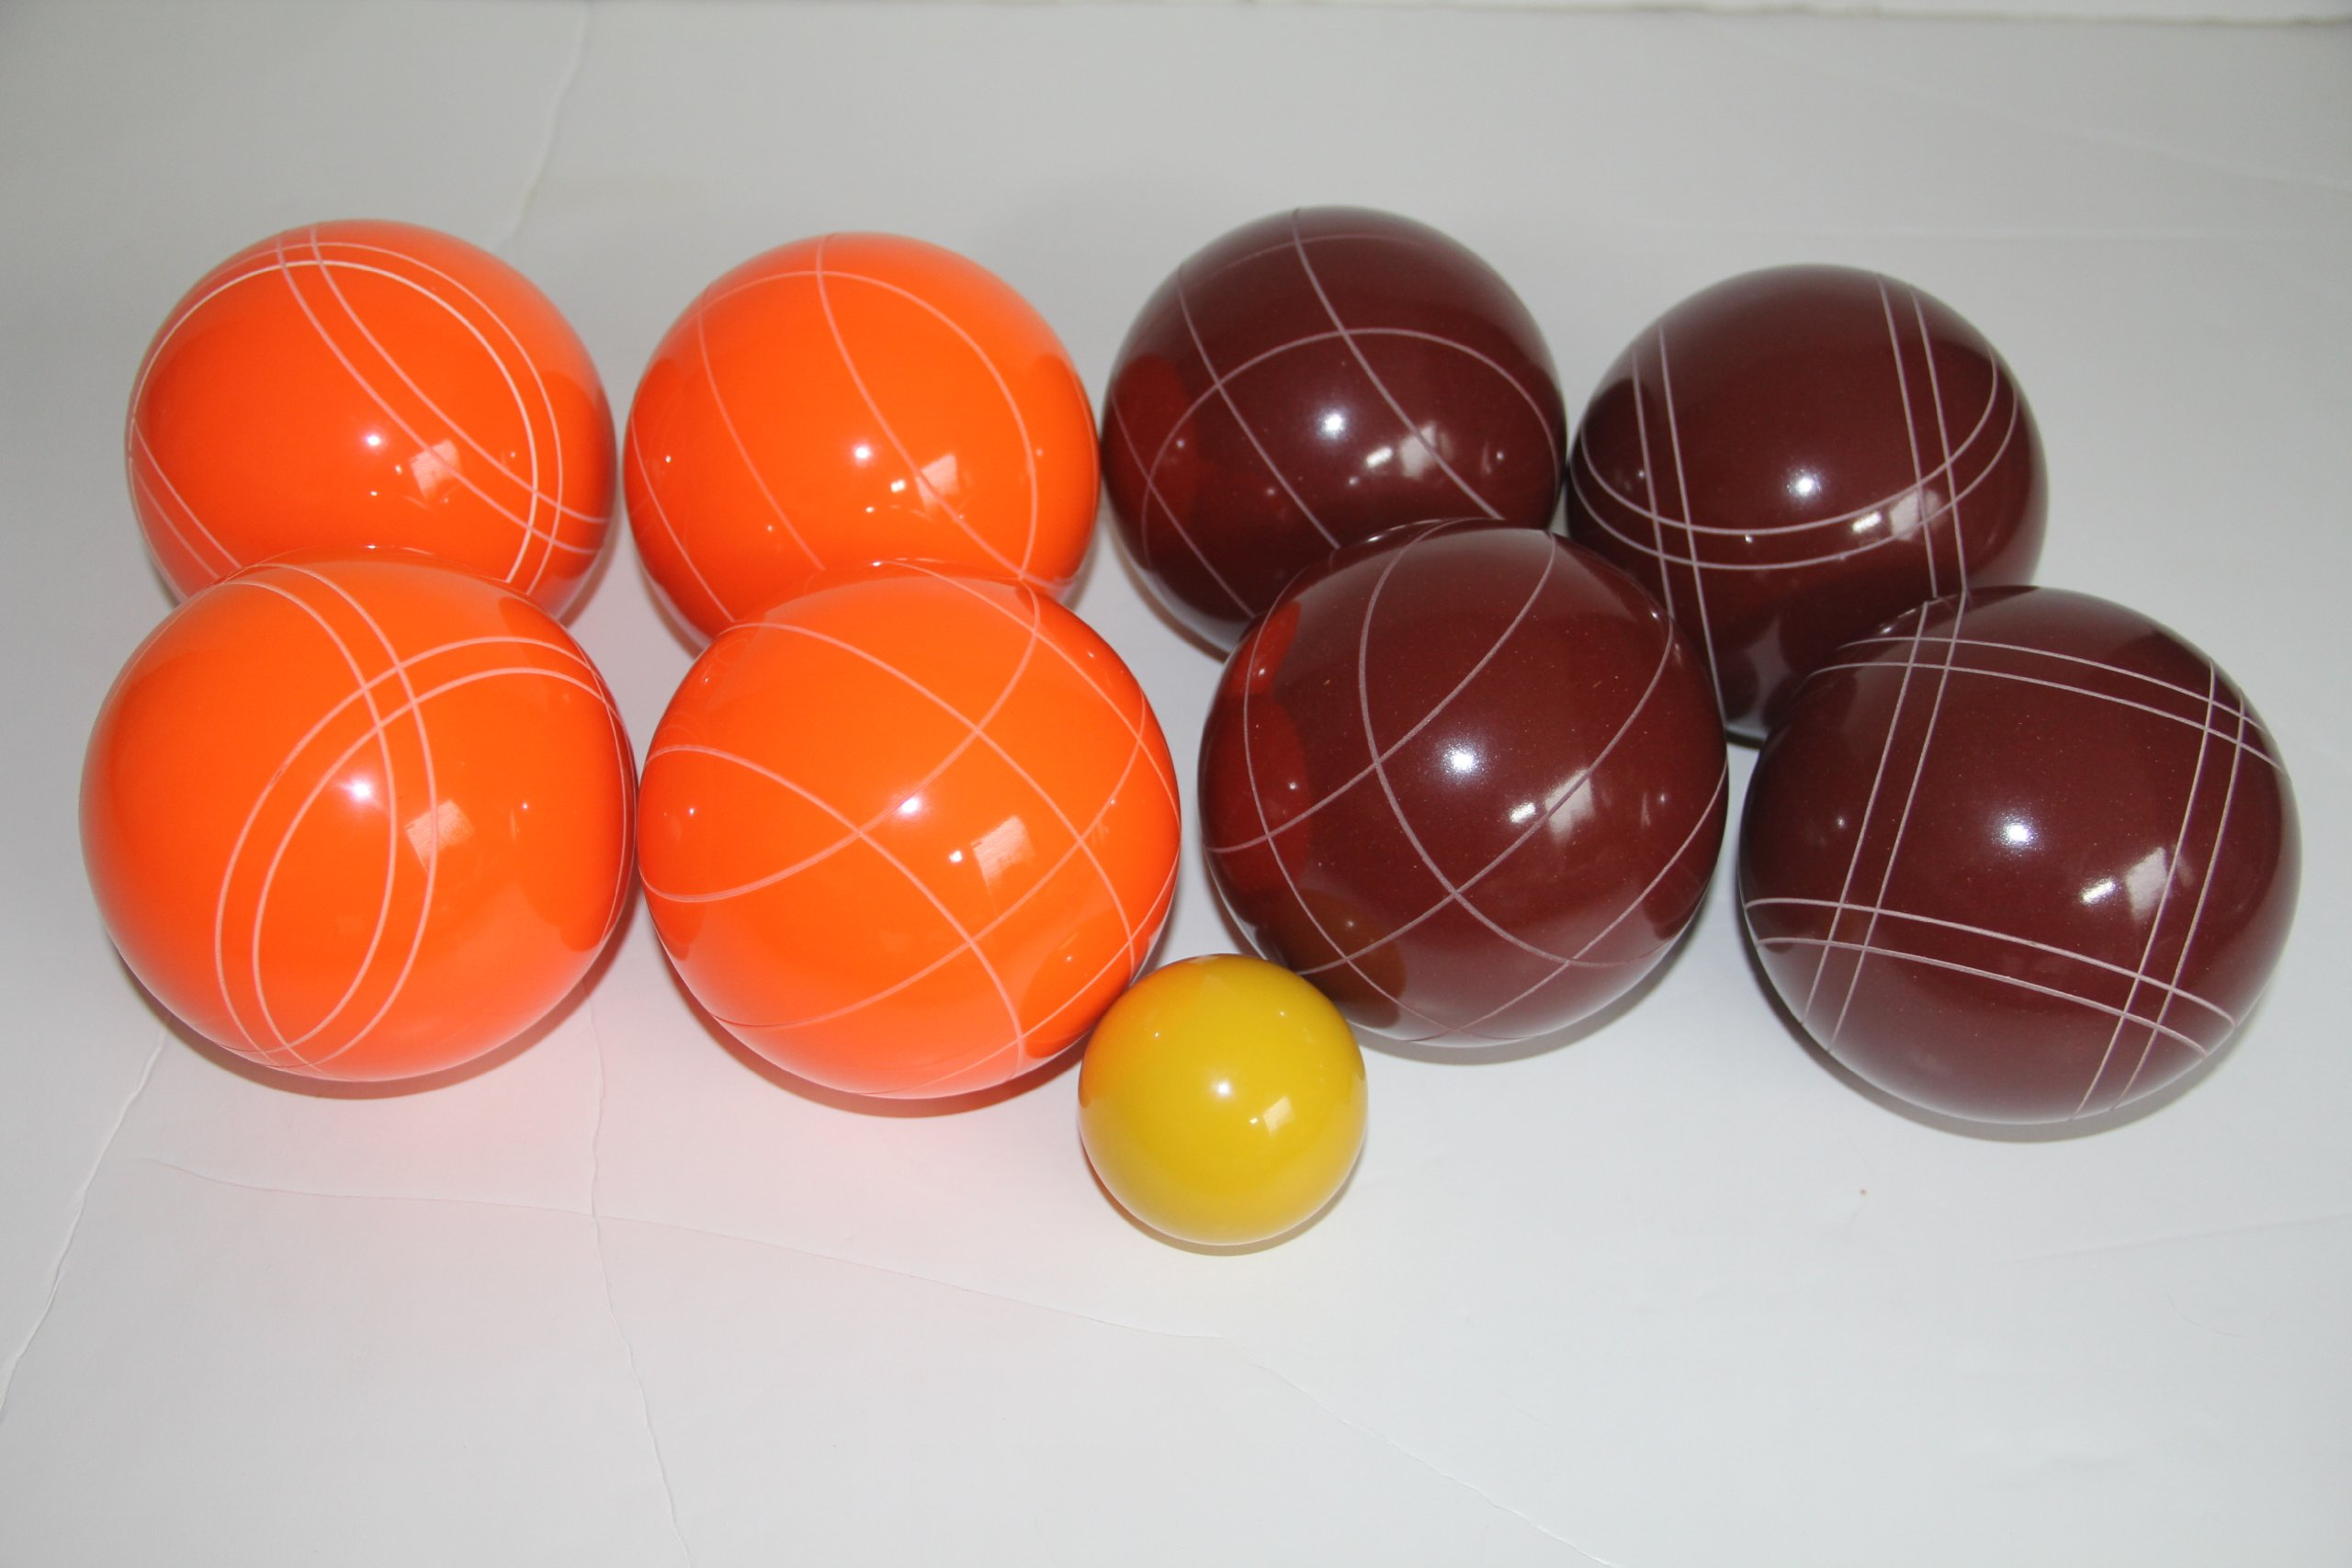 Premium Quality Epco Tournament Set - 110mm Red and Orange Bocce Balls - No BAG Option [Toy] by Epco